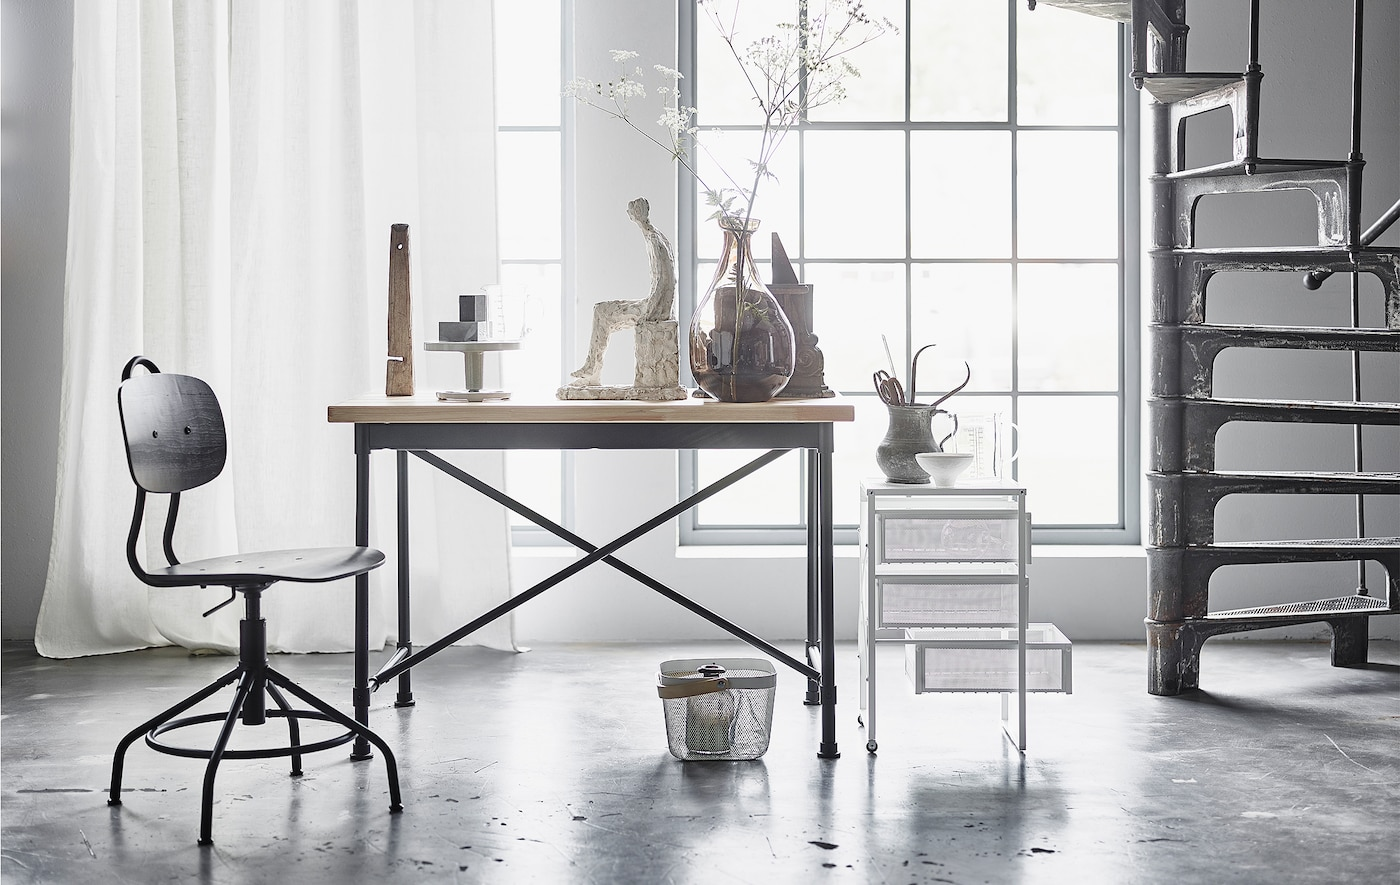 We think using combining industrial furniture with textiles and flowing shapes is a big upcoming trend.